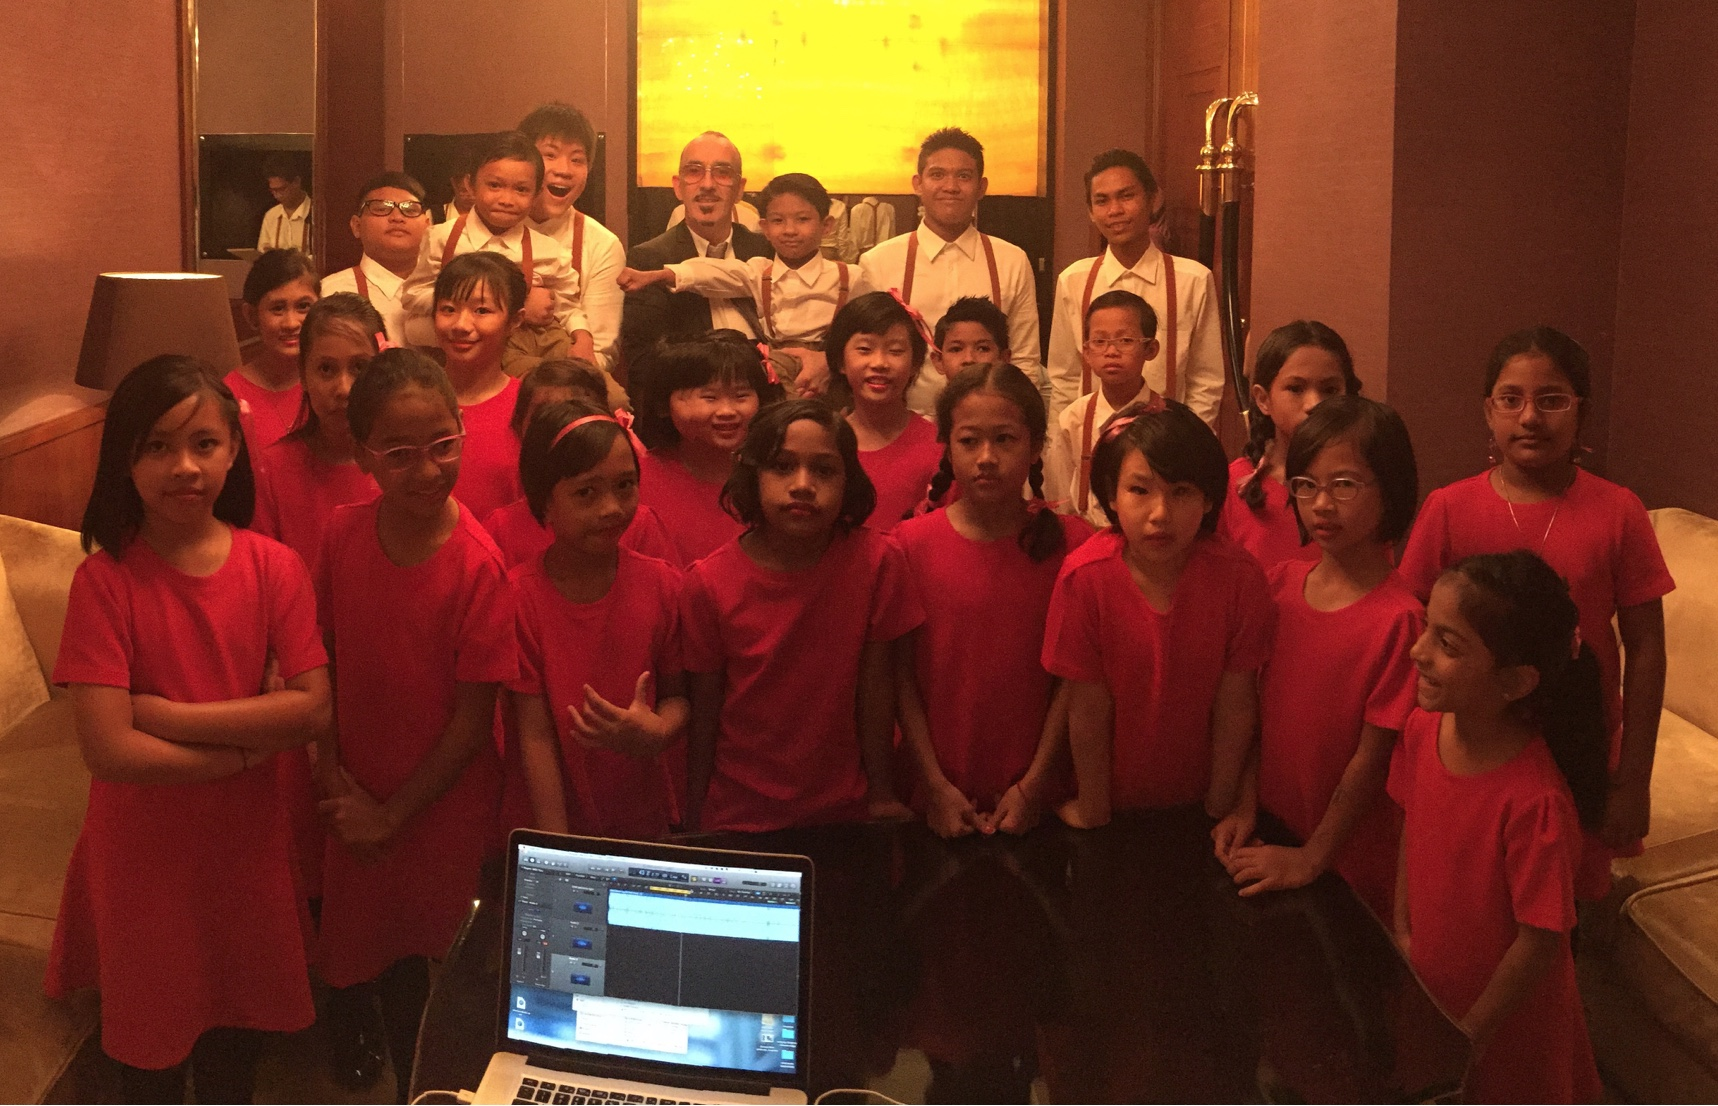 MILK - SLH is pictured here with some of the children from MILK who performed GIVE BACK live alongside cast members from the recording